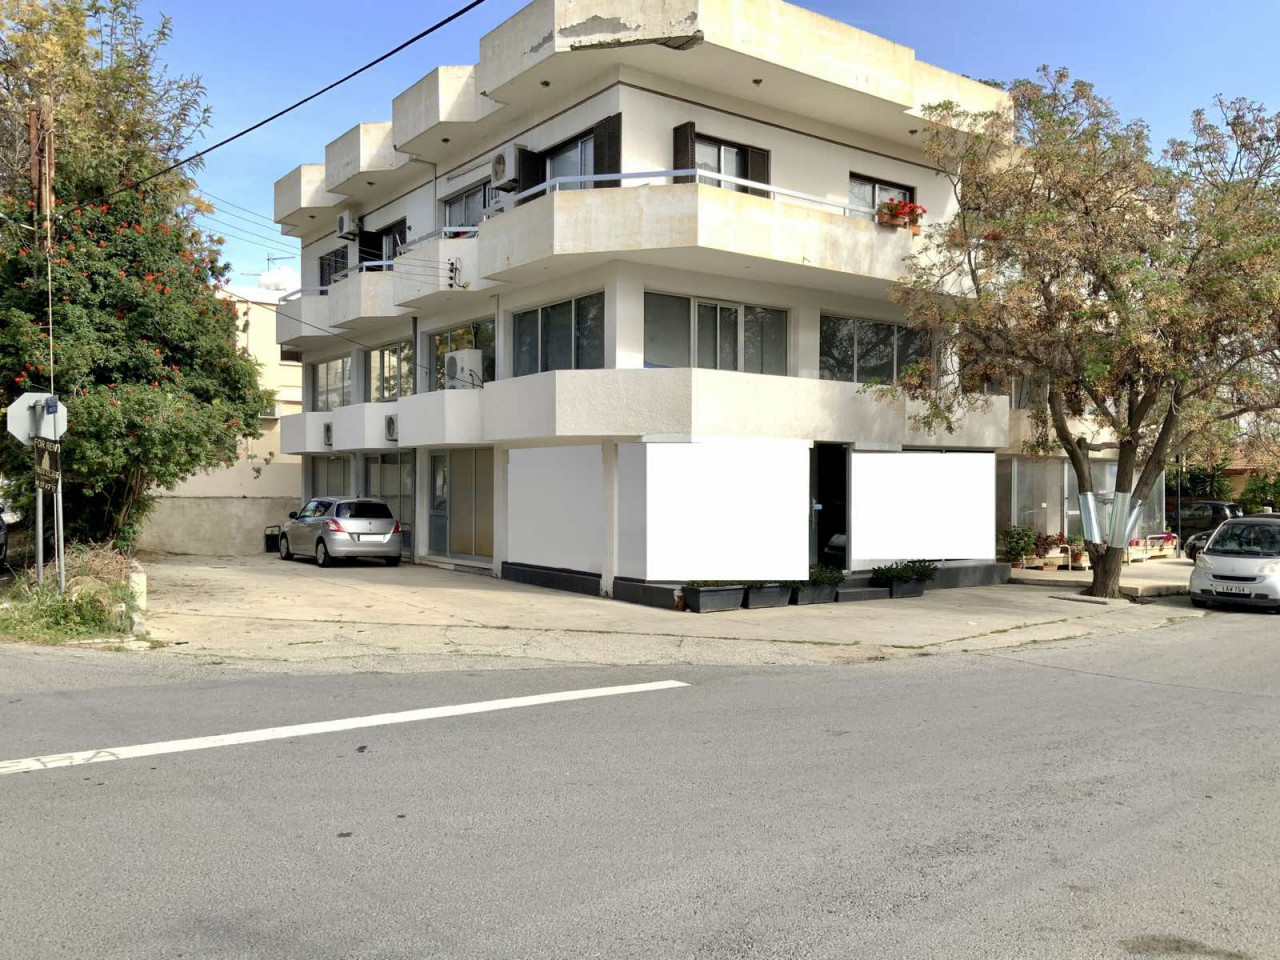 Commercial (Warehouse) in Strovolos, Nicosia for Rent  1 Bat.....